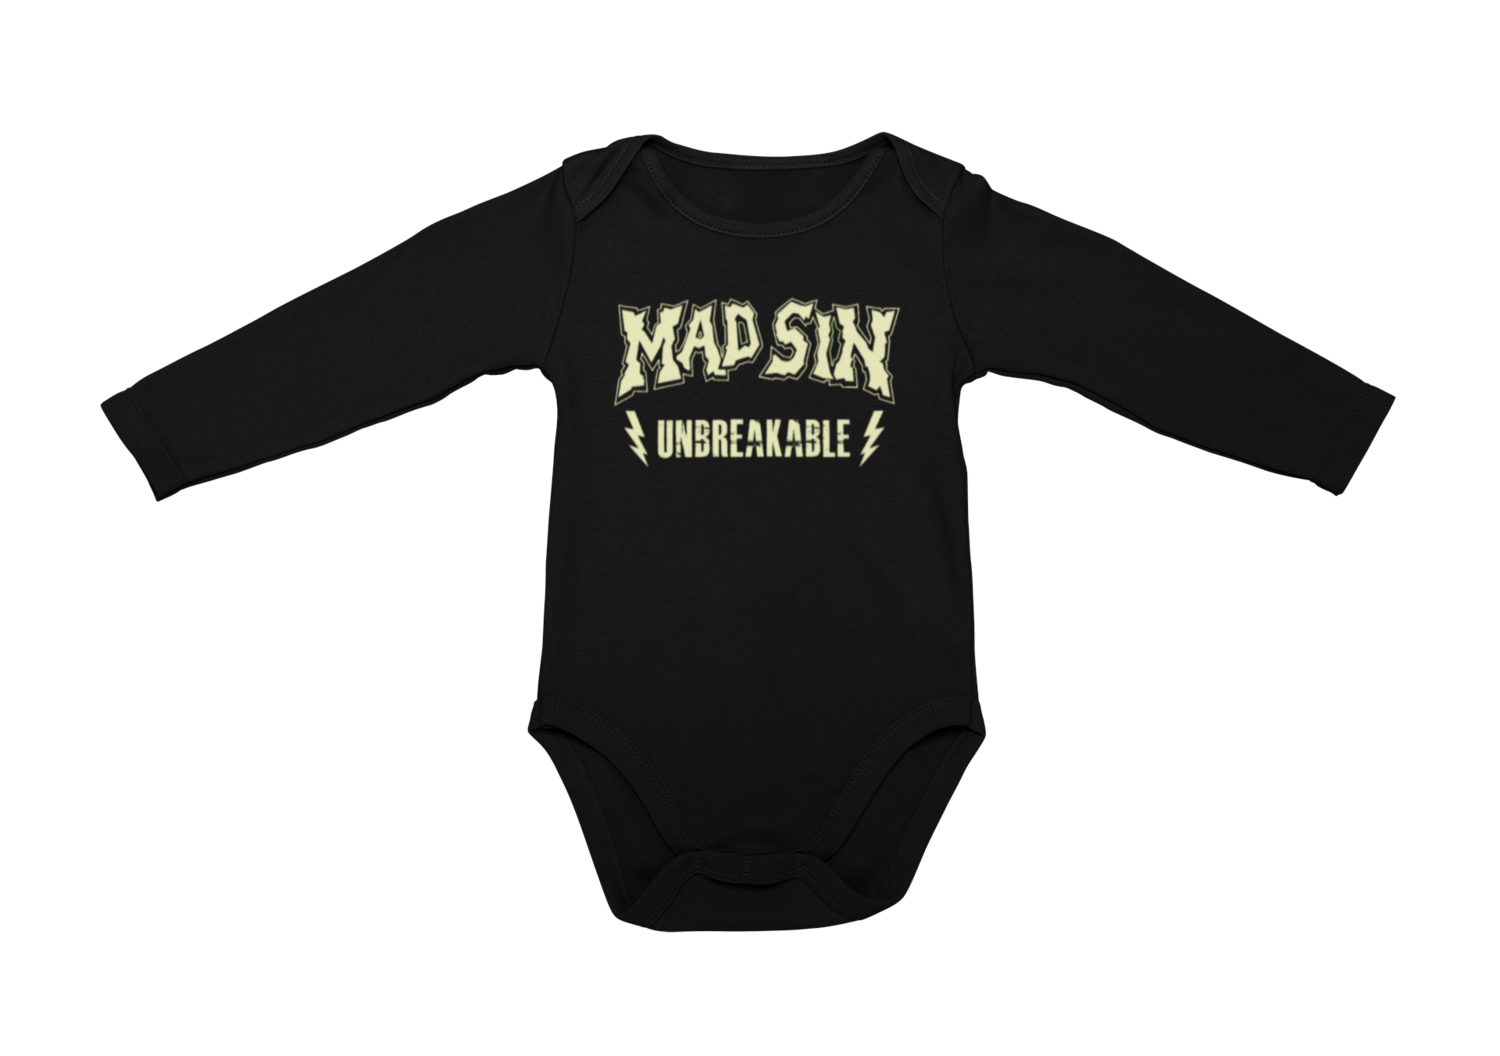 MAD SIN LOGO Unbreakable BABY ONIESE